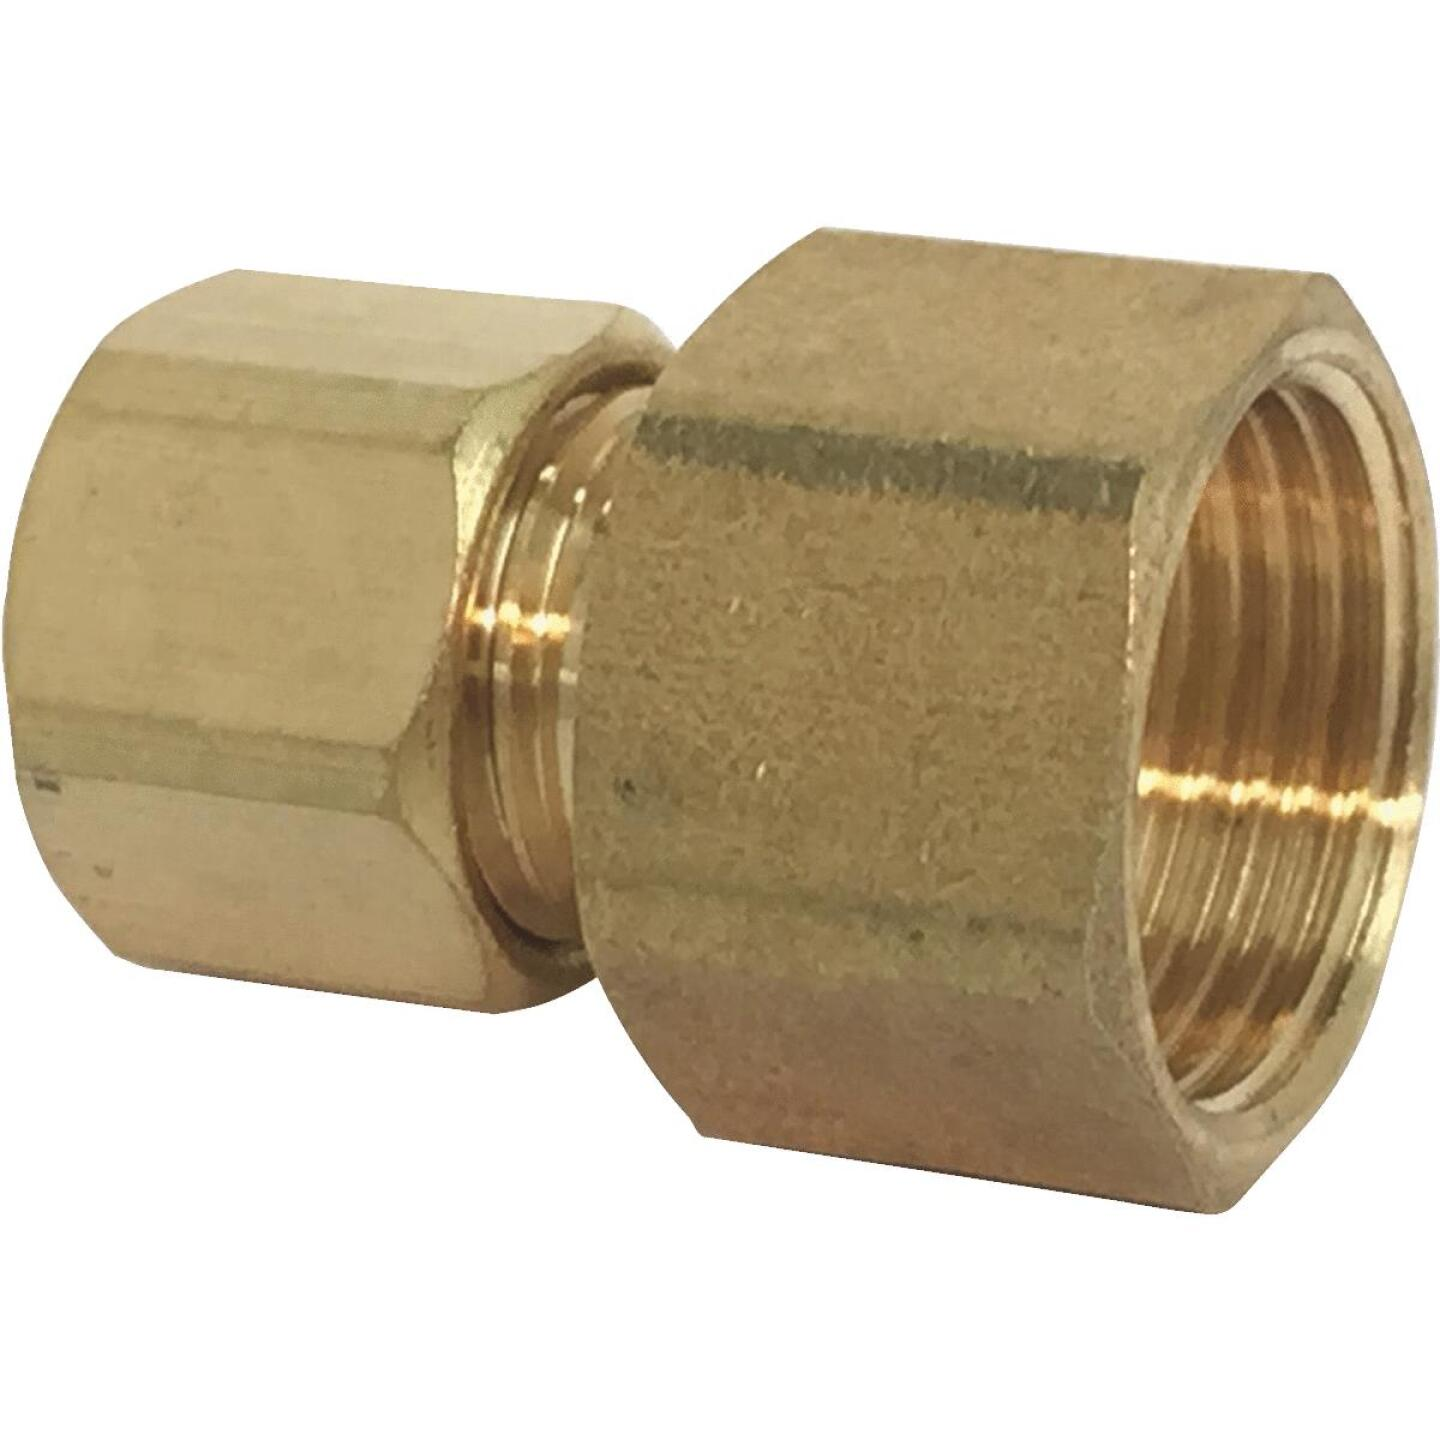 Sioux Chief 1/4 In. Compression X 1/4 In. Female Flare Adapter with Gasket For Ice Maker Connection Image 1